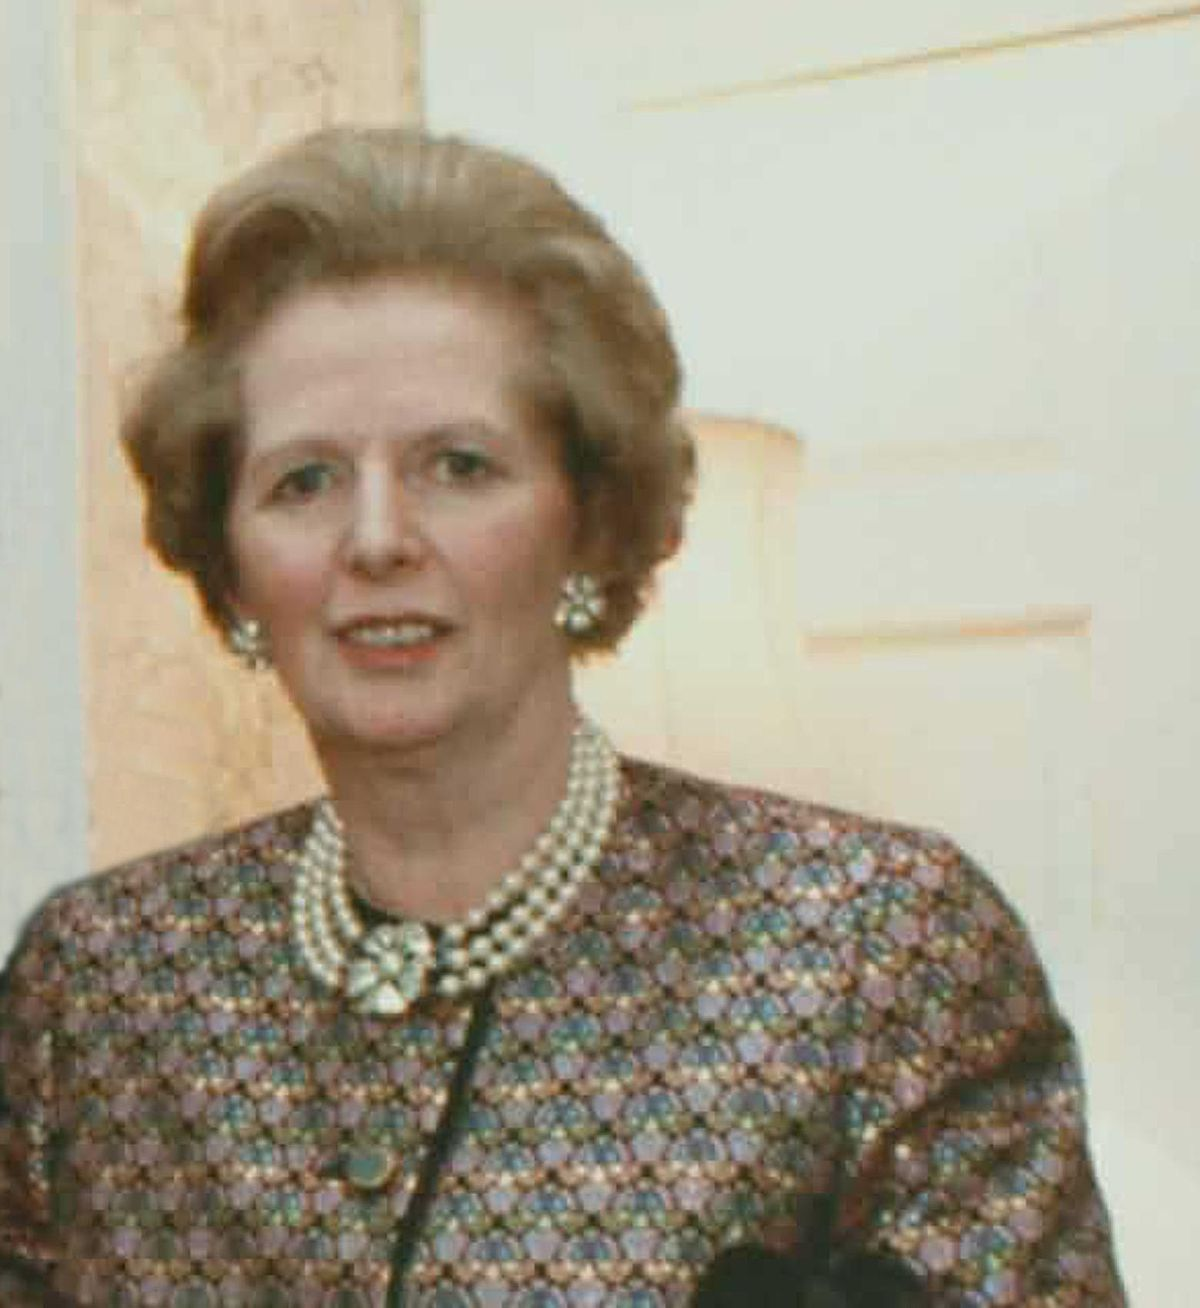 margaret thatcher 1 After decades of decline, margaret thatcher's leadership brought courage and conviction to a nation that had grown used to second best, says charles moore.